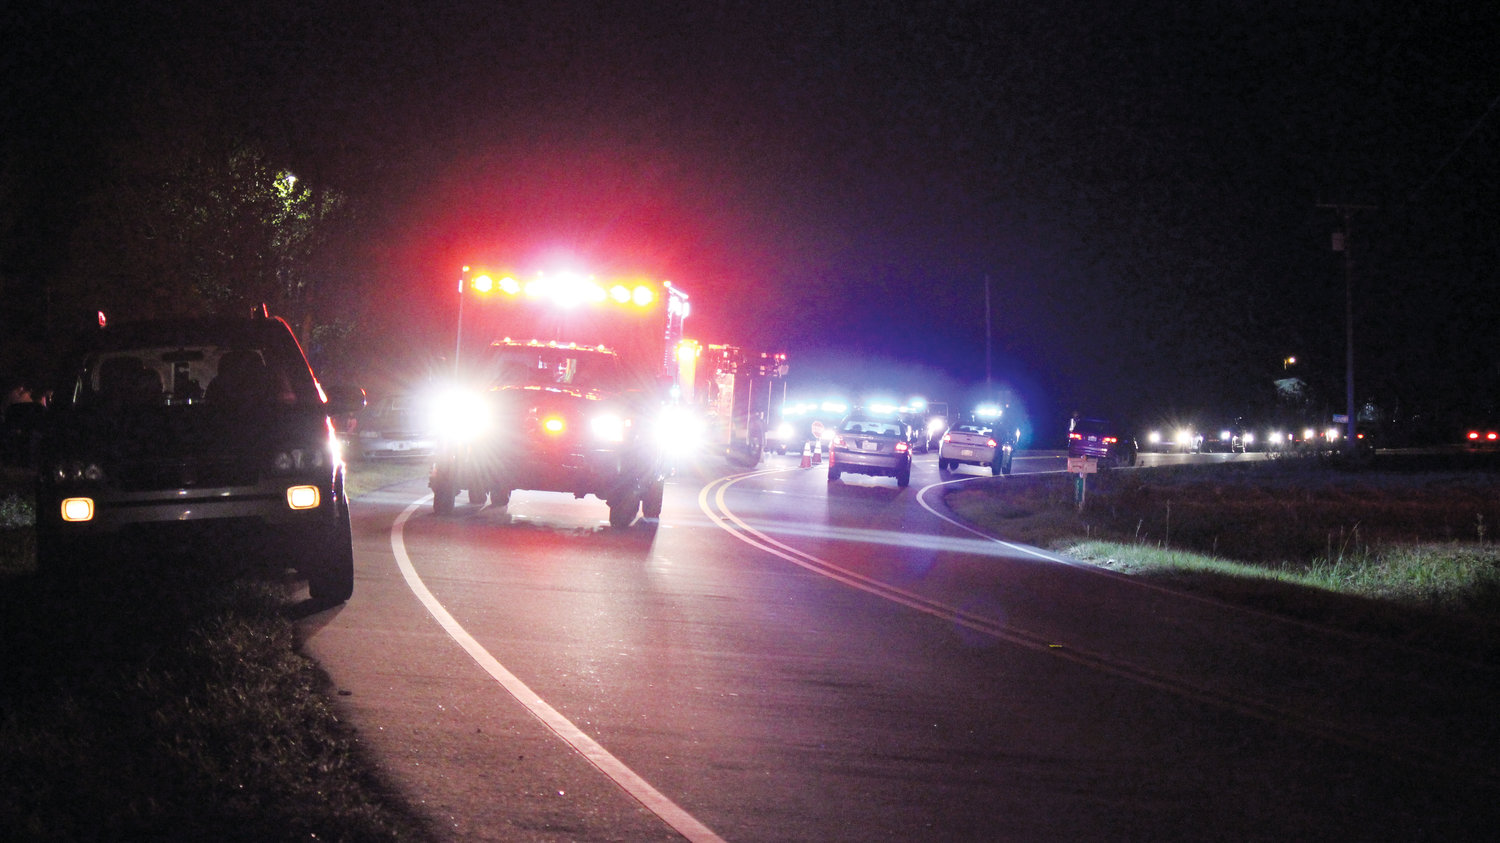 First responders were called to the scene of a one-vehicle crash involving a motorcycle Wednesday night near Bunnlevel. The crash took place on U.S. 401 near McLean Chapel Road around 6 p.m. The rider, a soldier set to be deployed today, succumbed to his injuries at the scene.